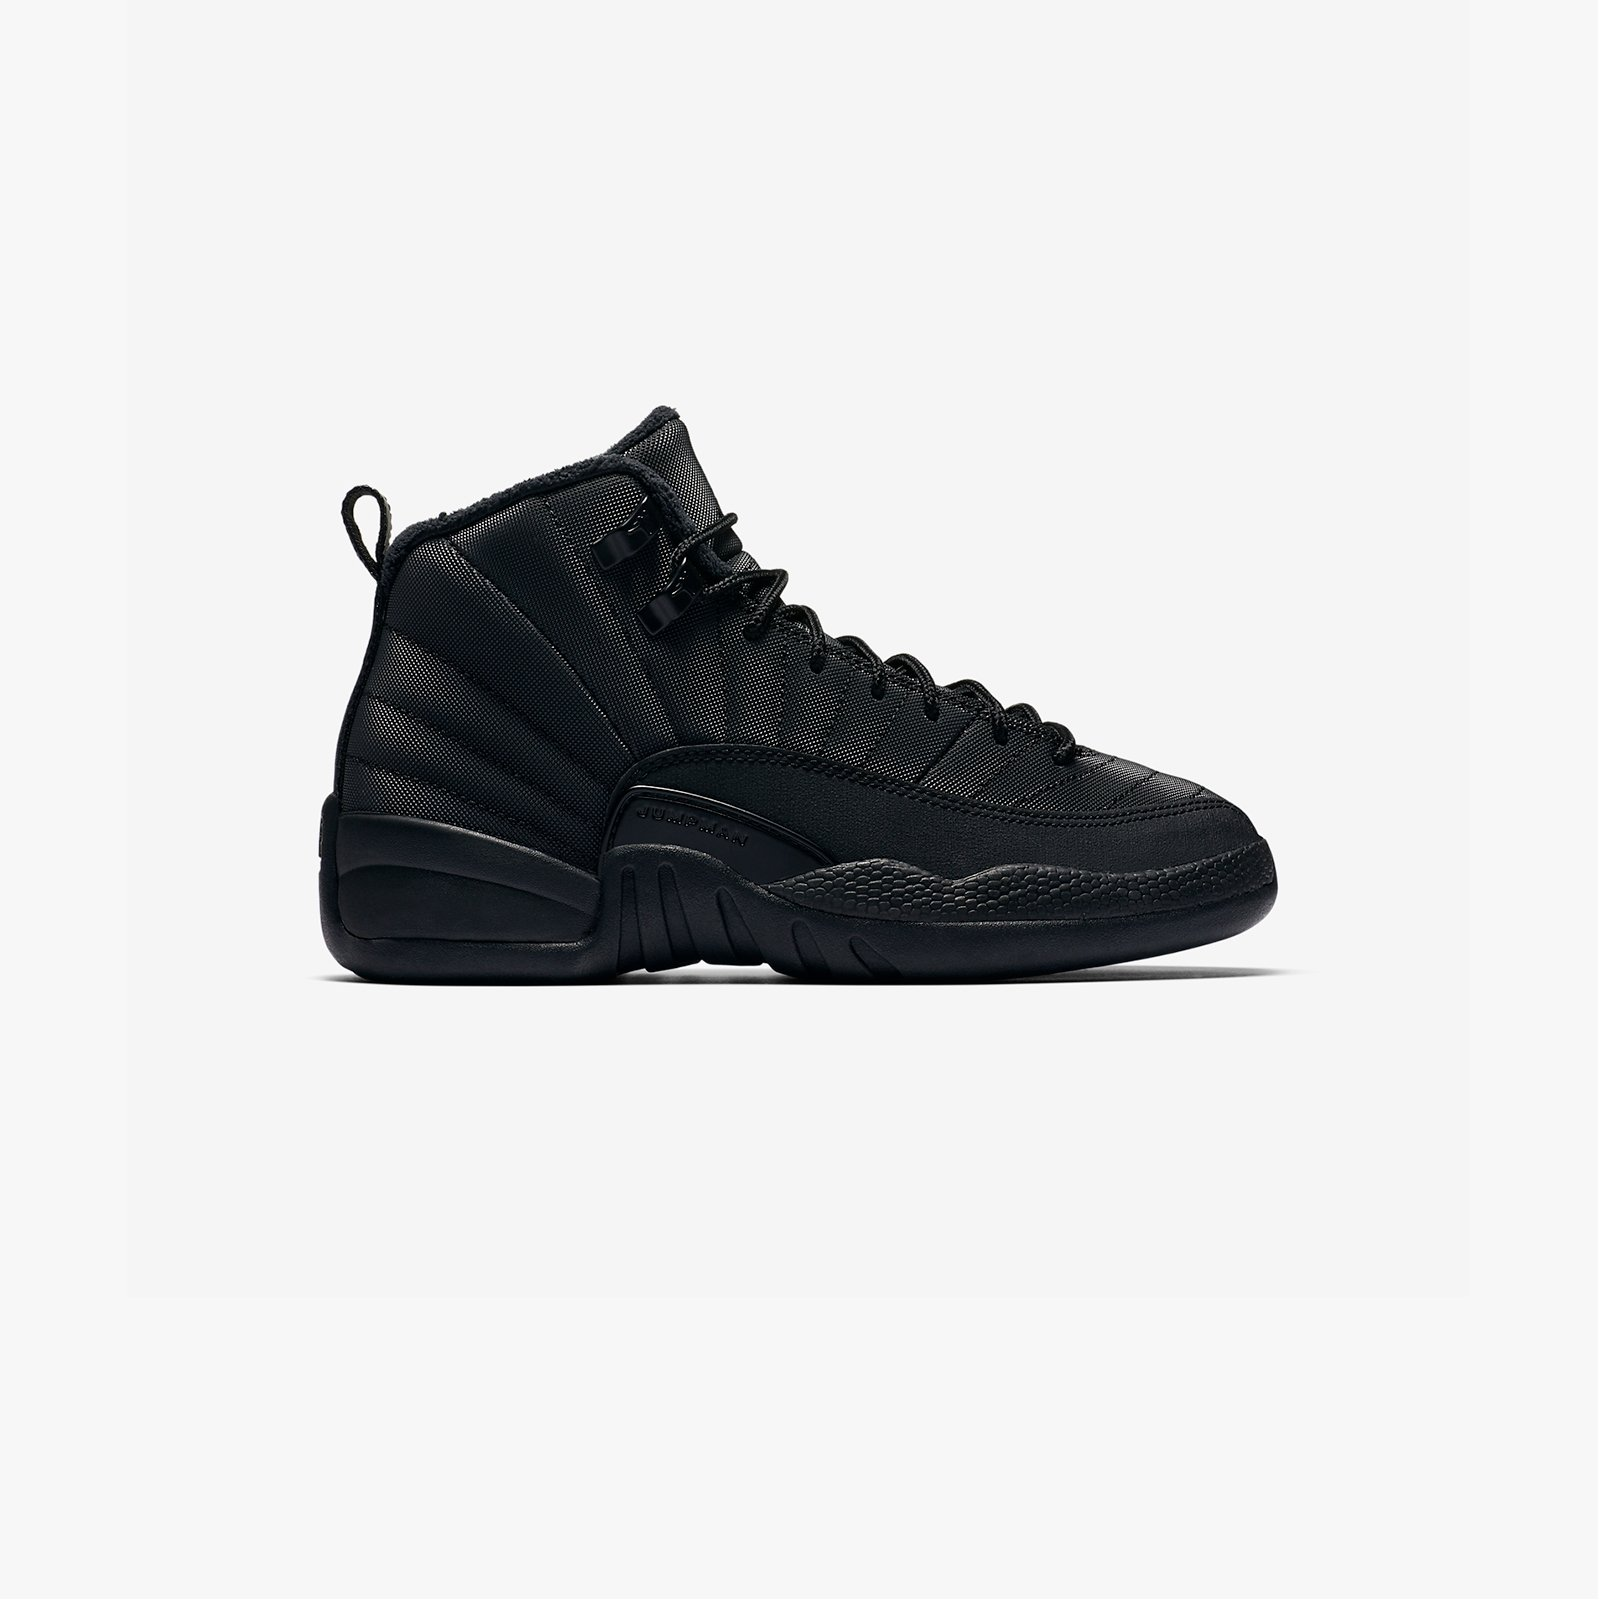 promo code fdfb4 4c45c Jordan Brand Air Jordan 12 Retro Winter (GS)